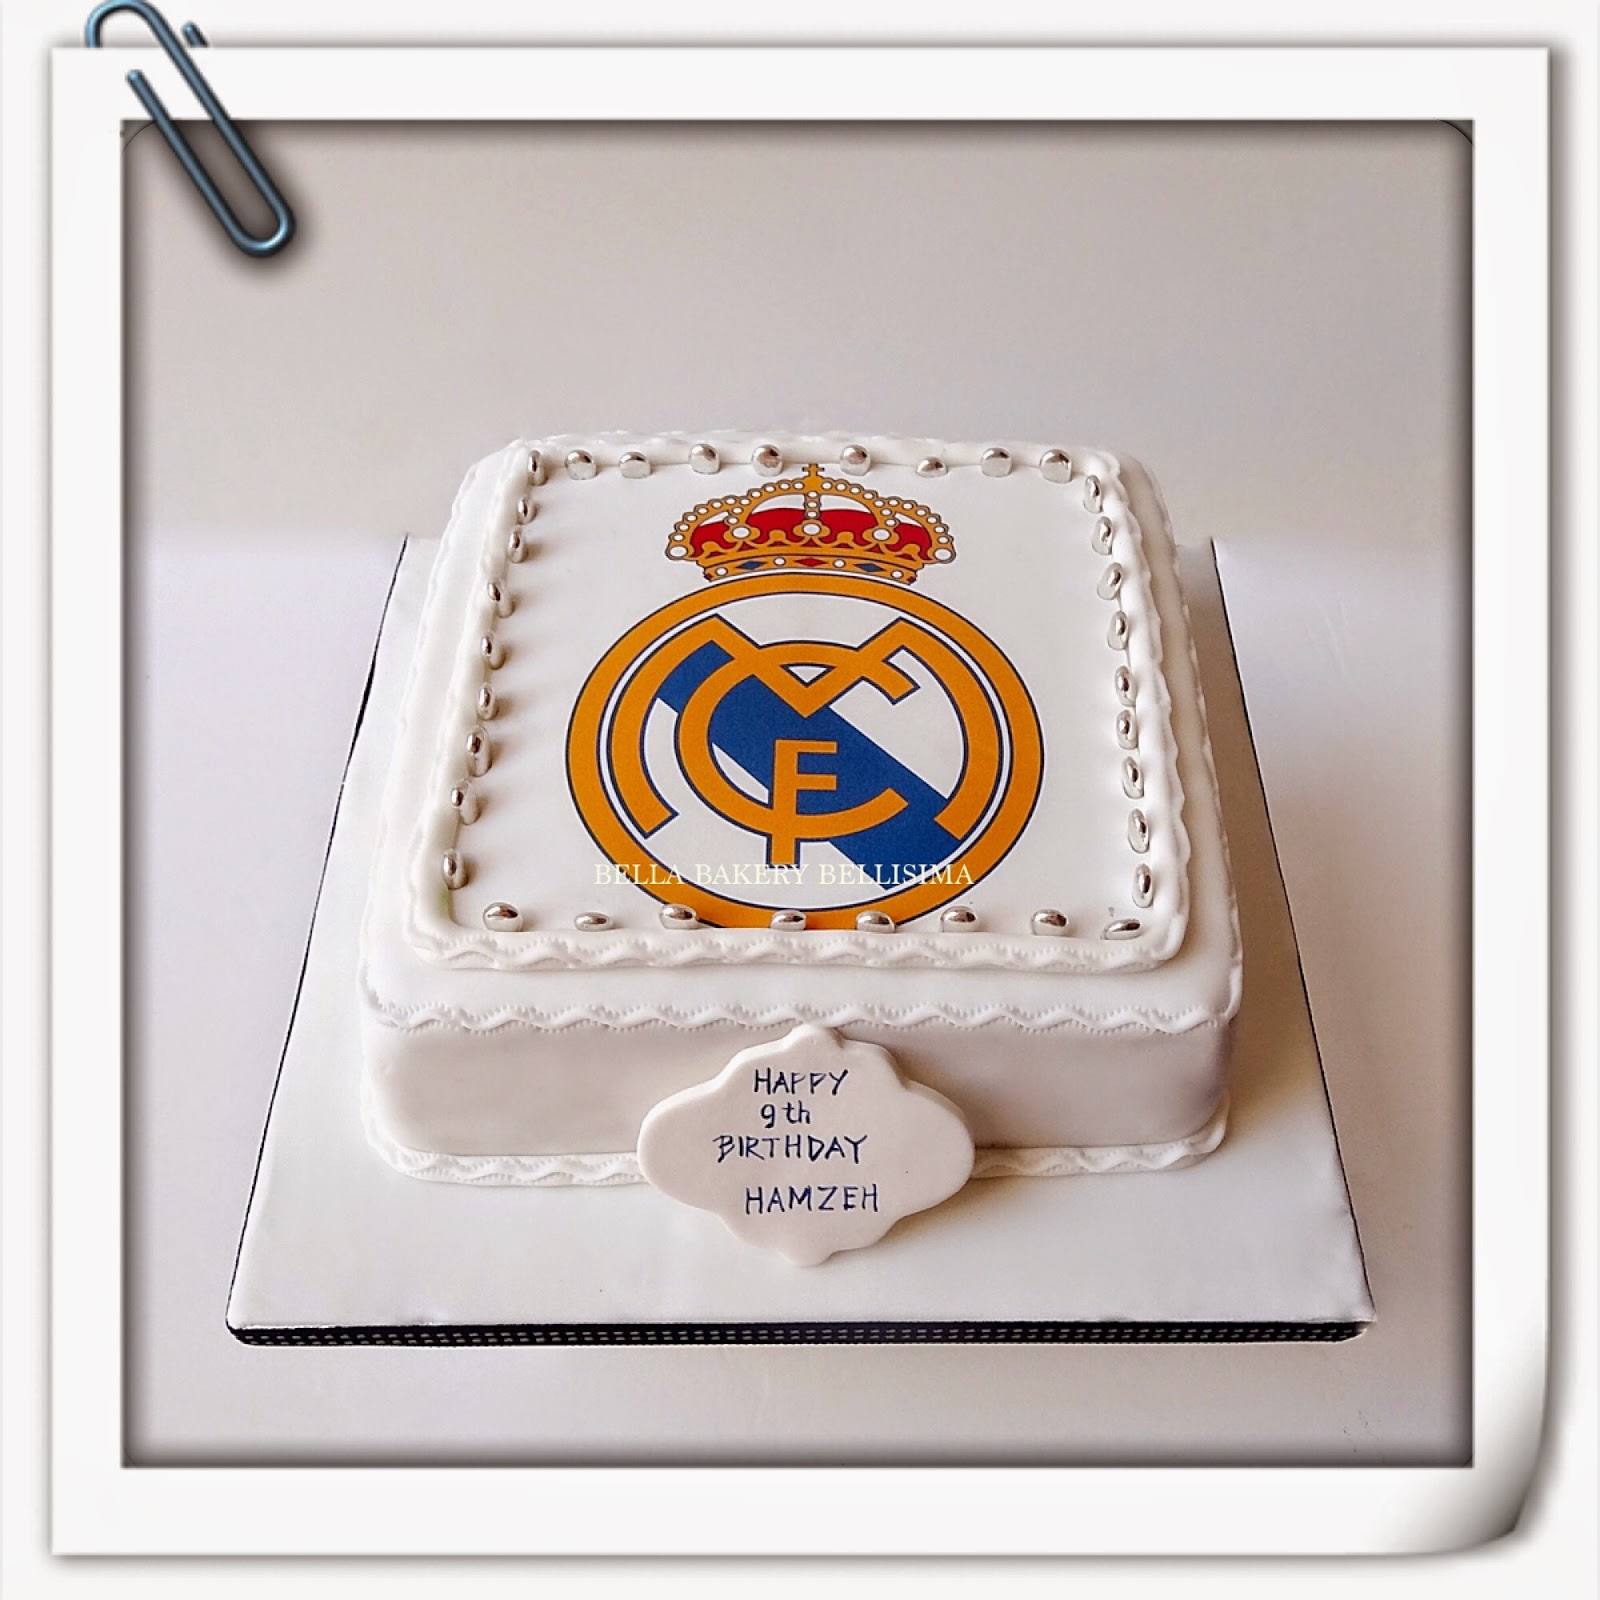 Birthday Cake Images Real : REAL MADRID FOOTBALL CLUB CAKE